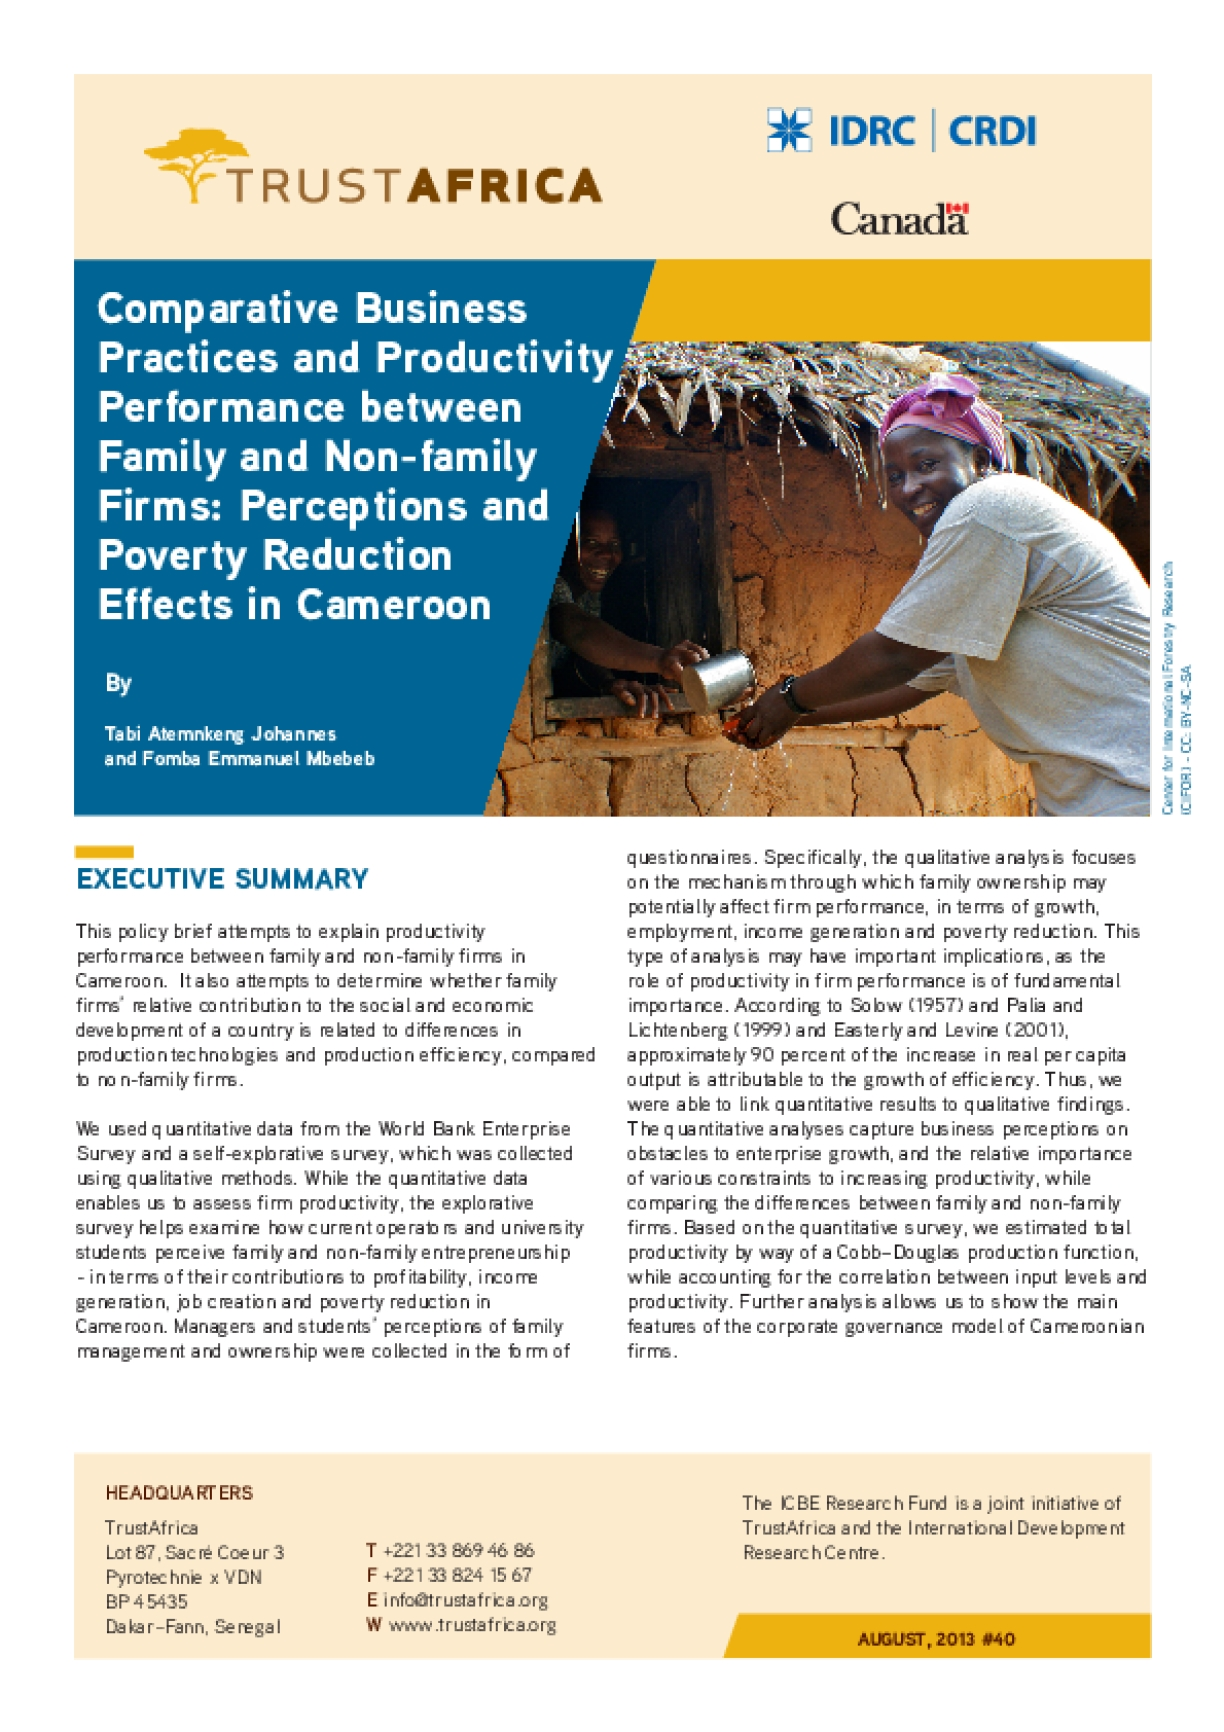 Comparative Business Practices and Productivity Performance between Family and Non-family Firms: Perceptions and Poverty Reduction Effects in Cameroon